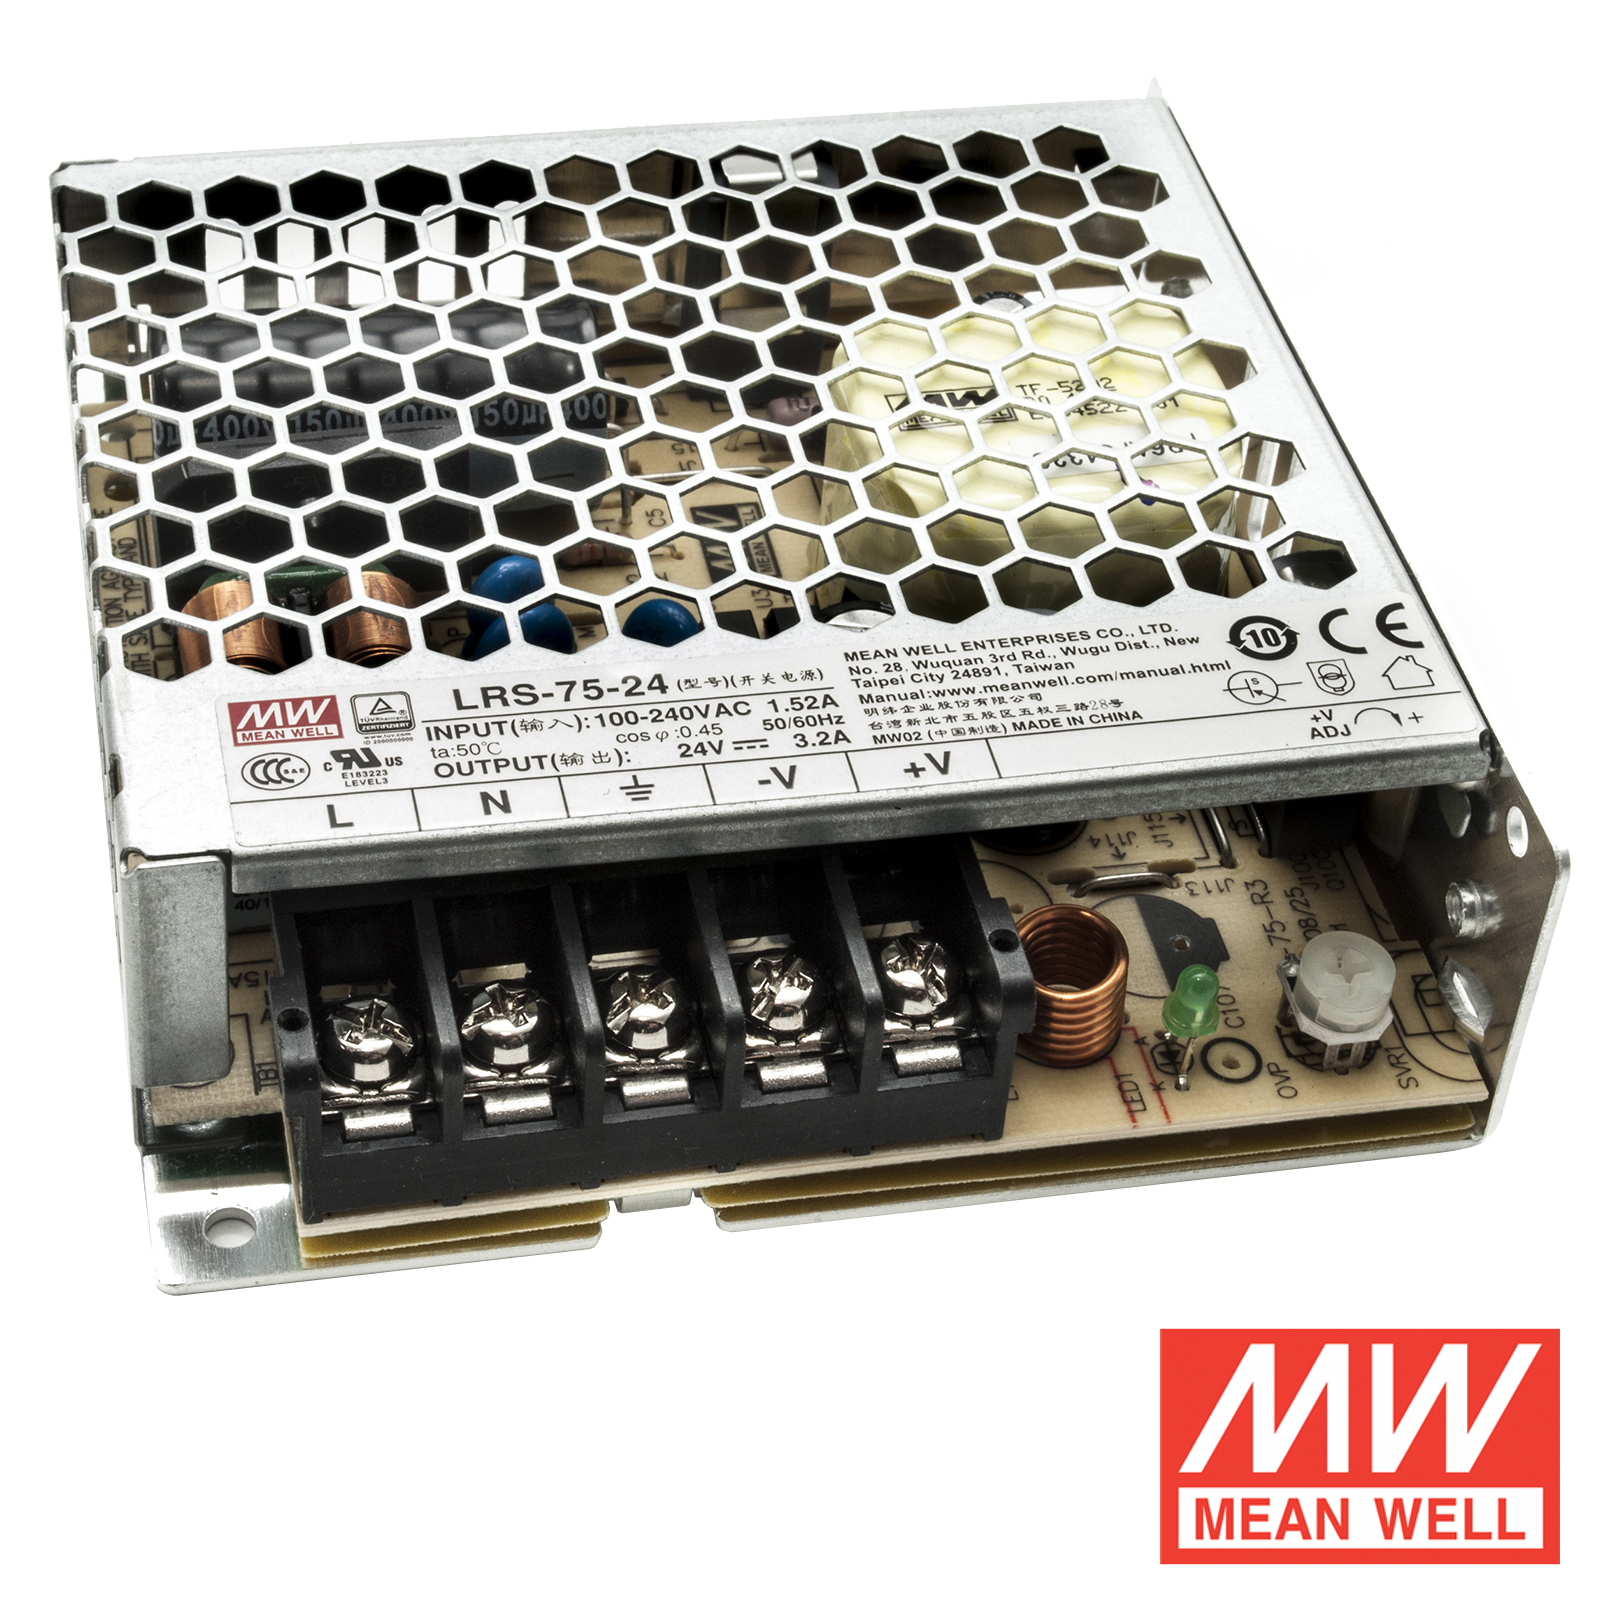 Regulated power supply 75W professional Mean Well LRS-75-24 220V to 24V